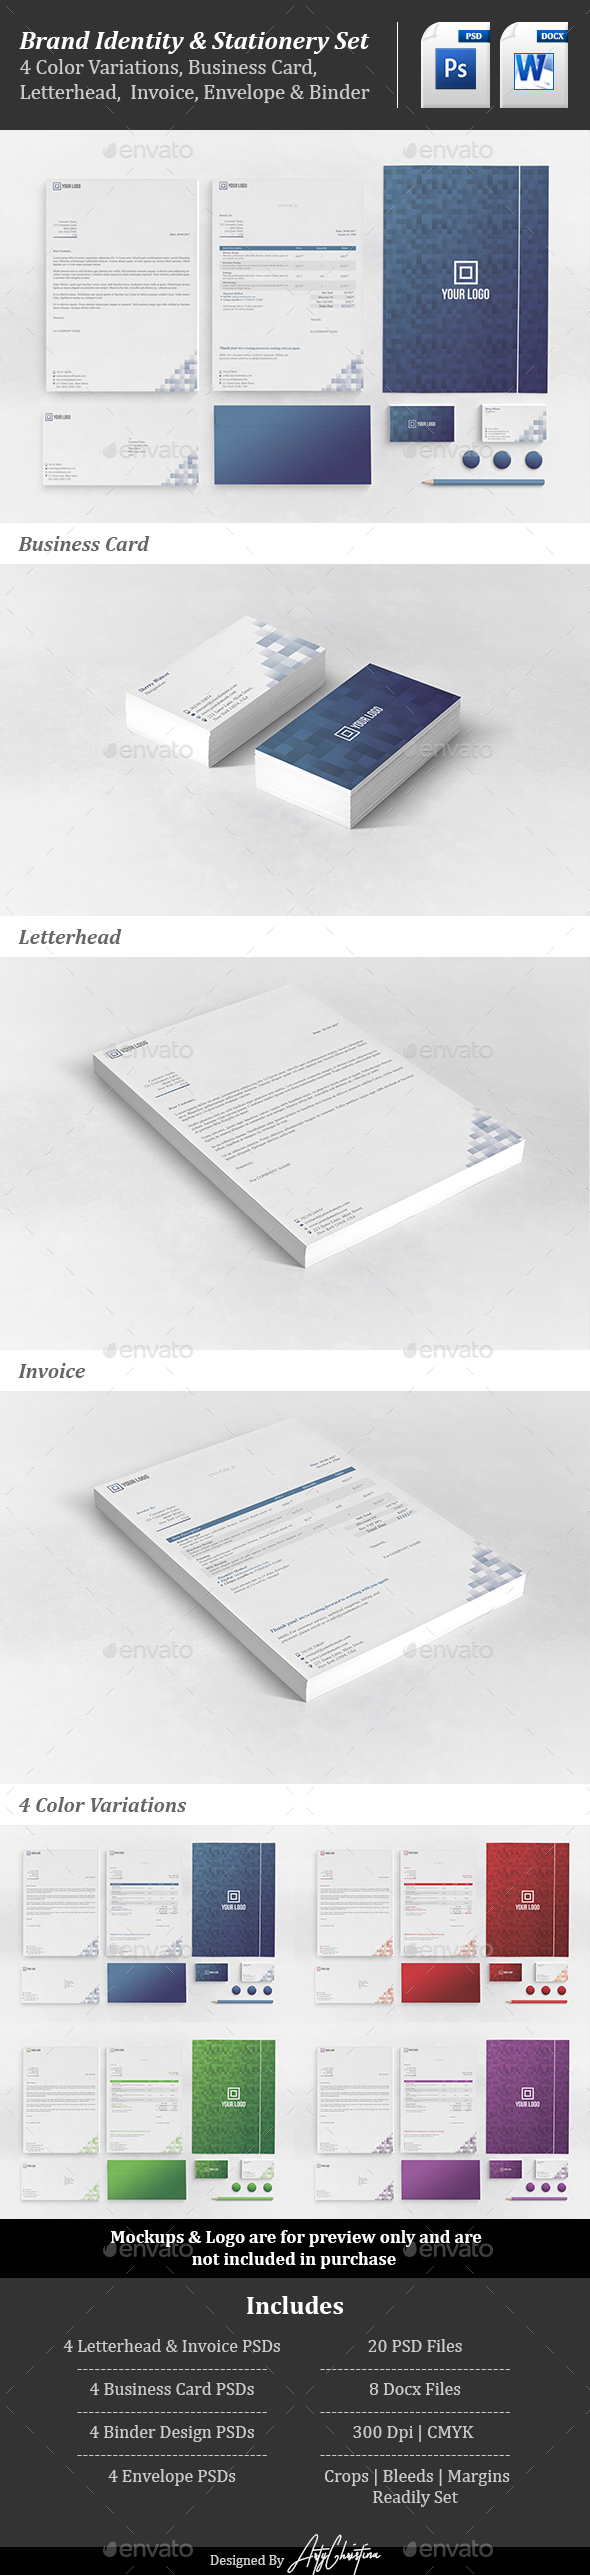 Corporate Stationery Set Vol. 2 - Stationery Print Templates